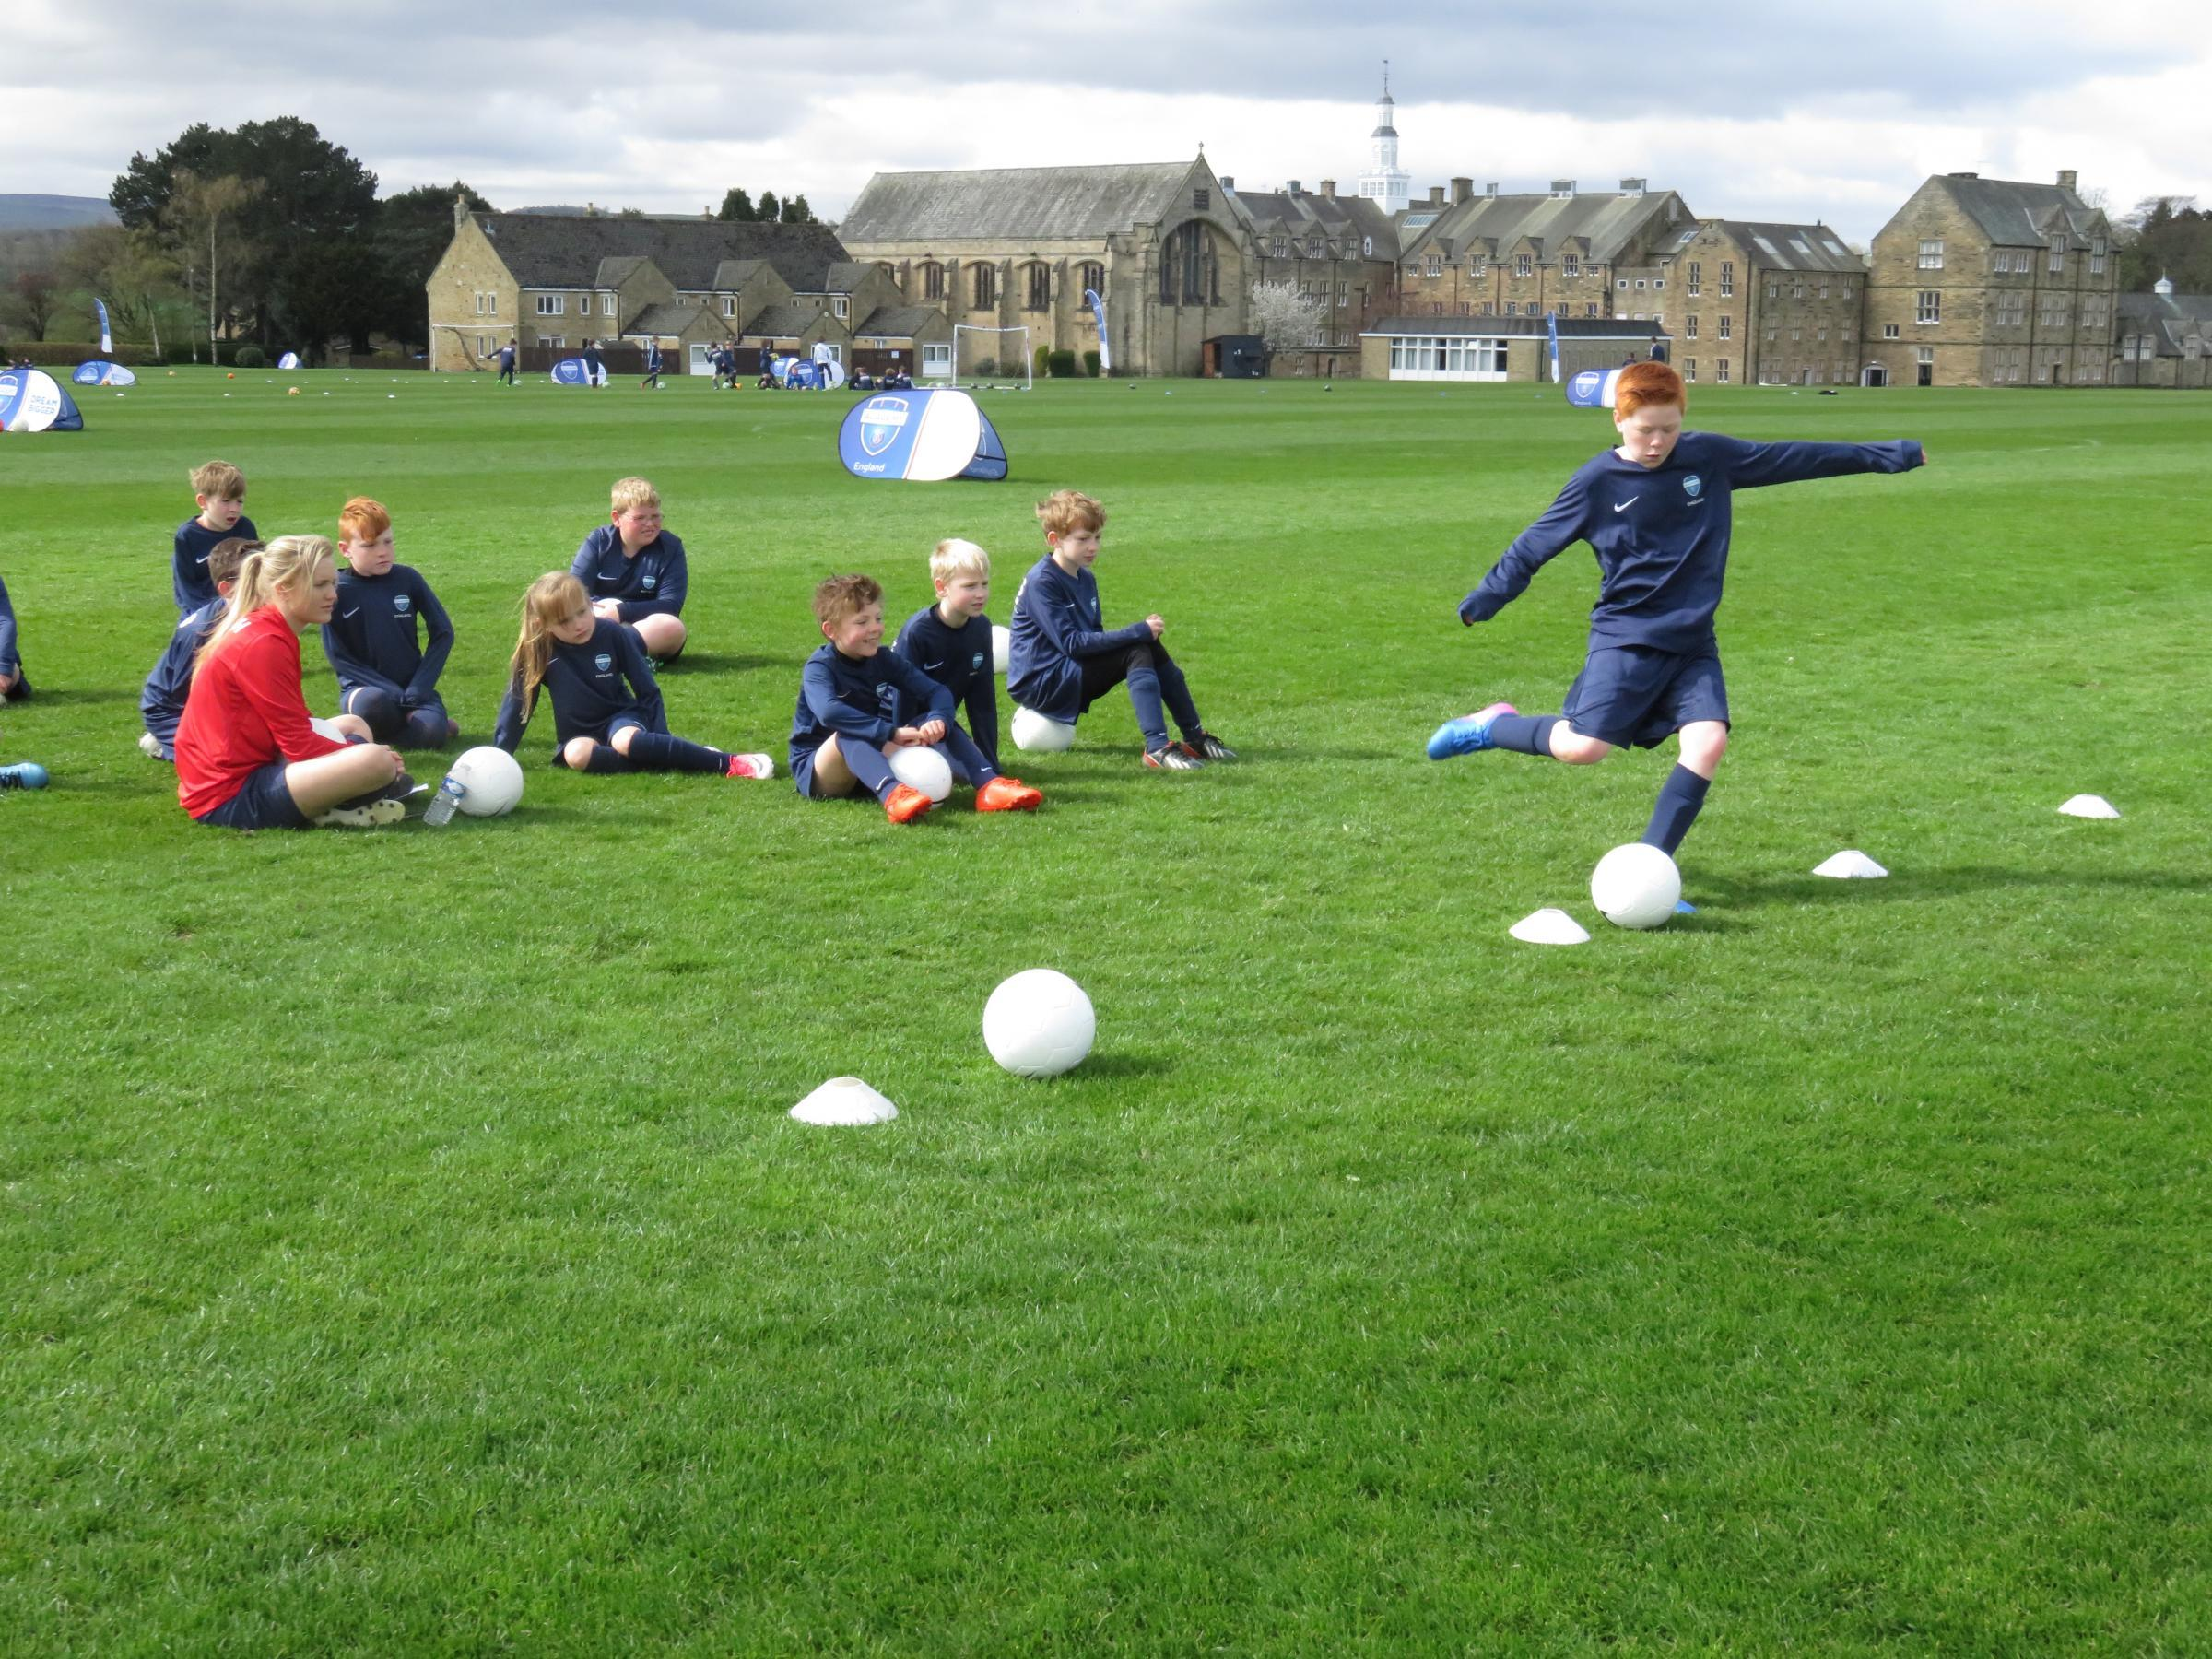 Youngsters take part in a PSG soccer camp at Barnard Castle School